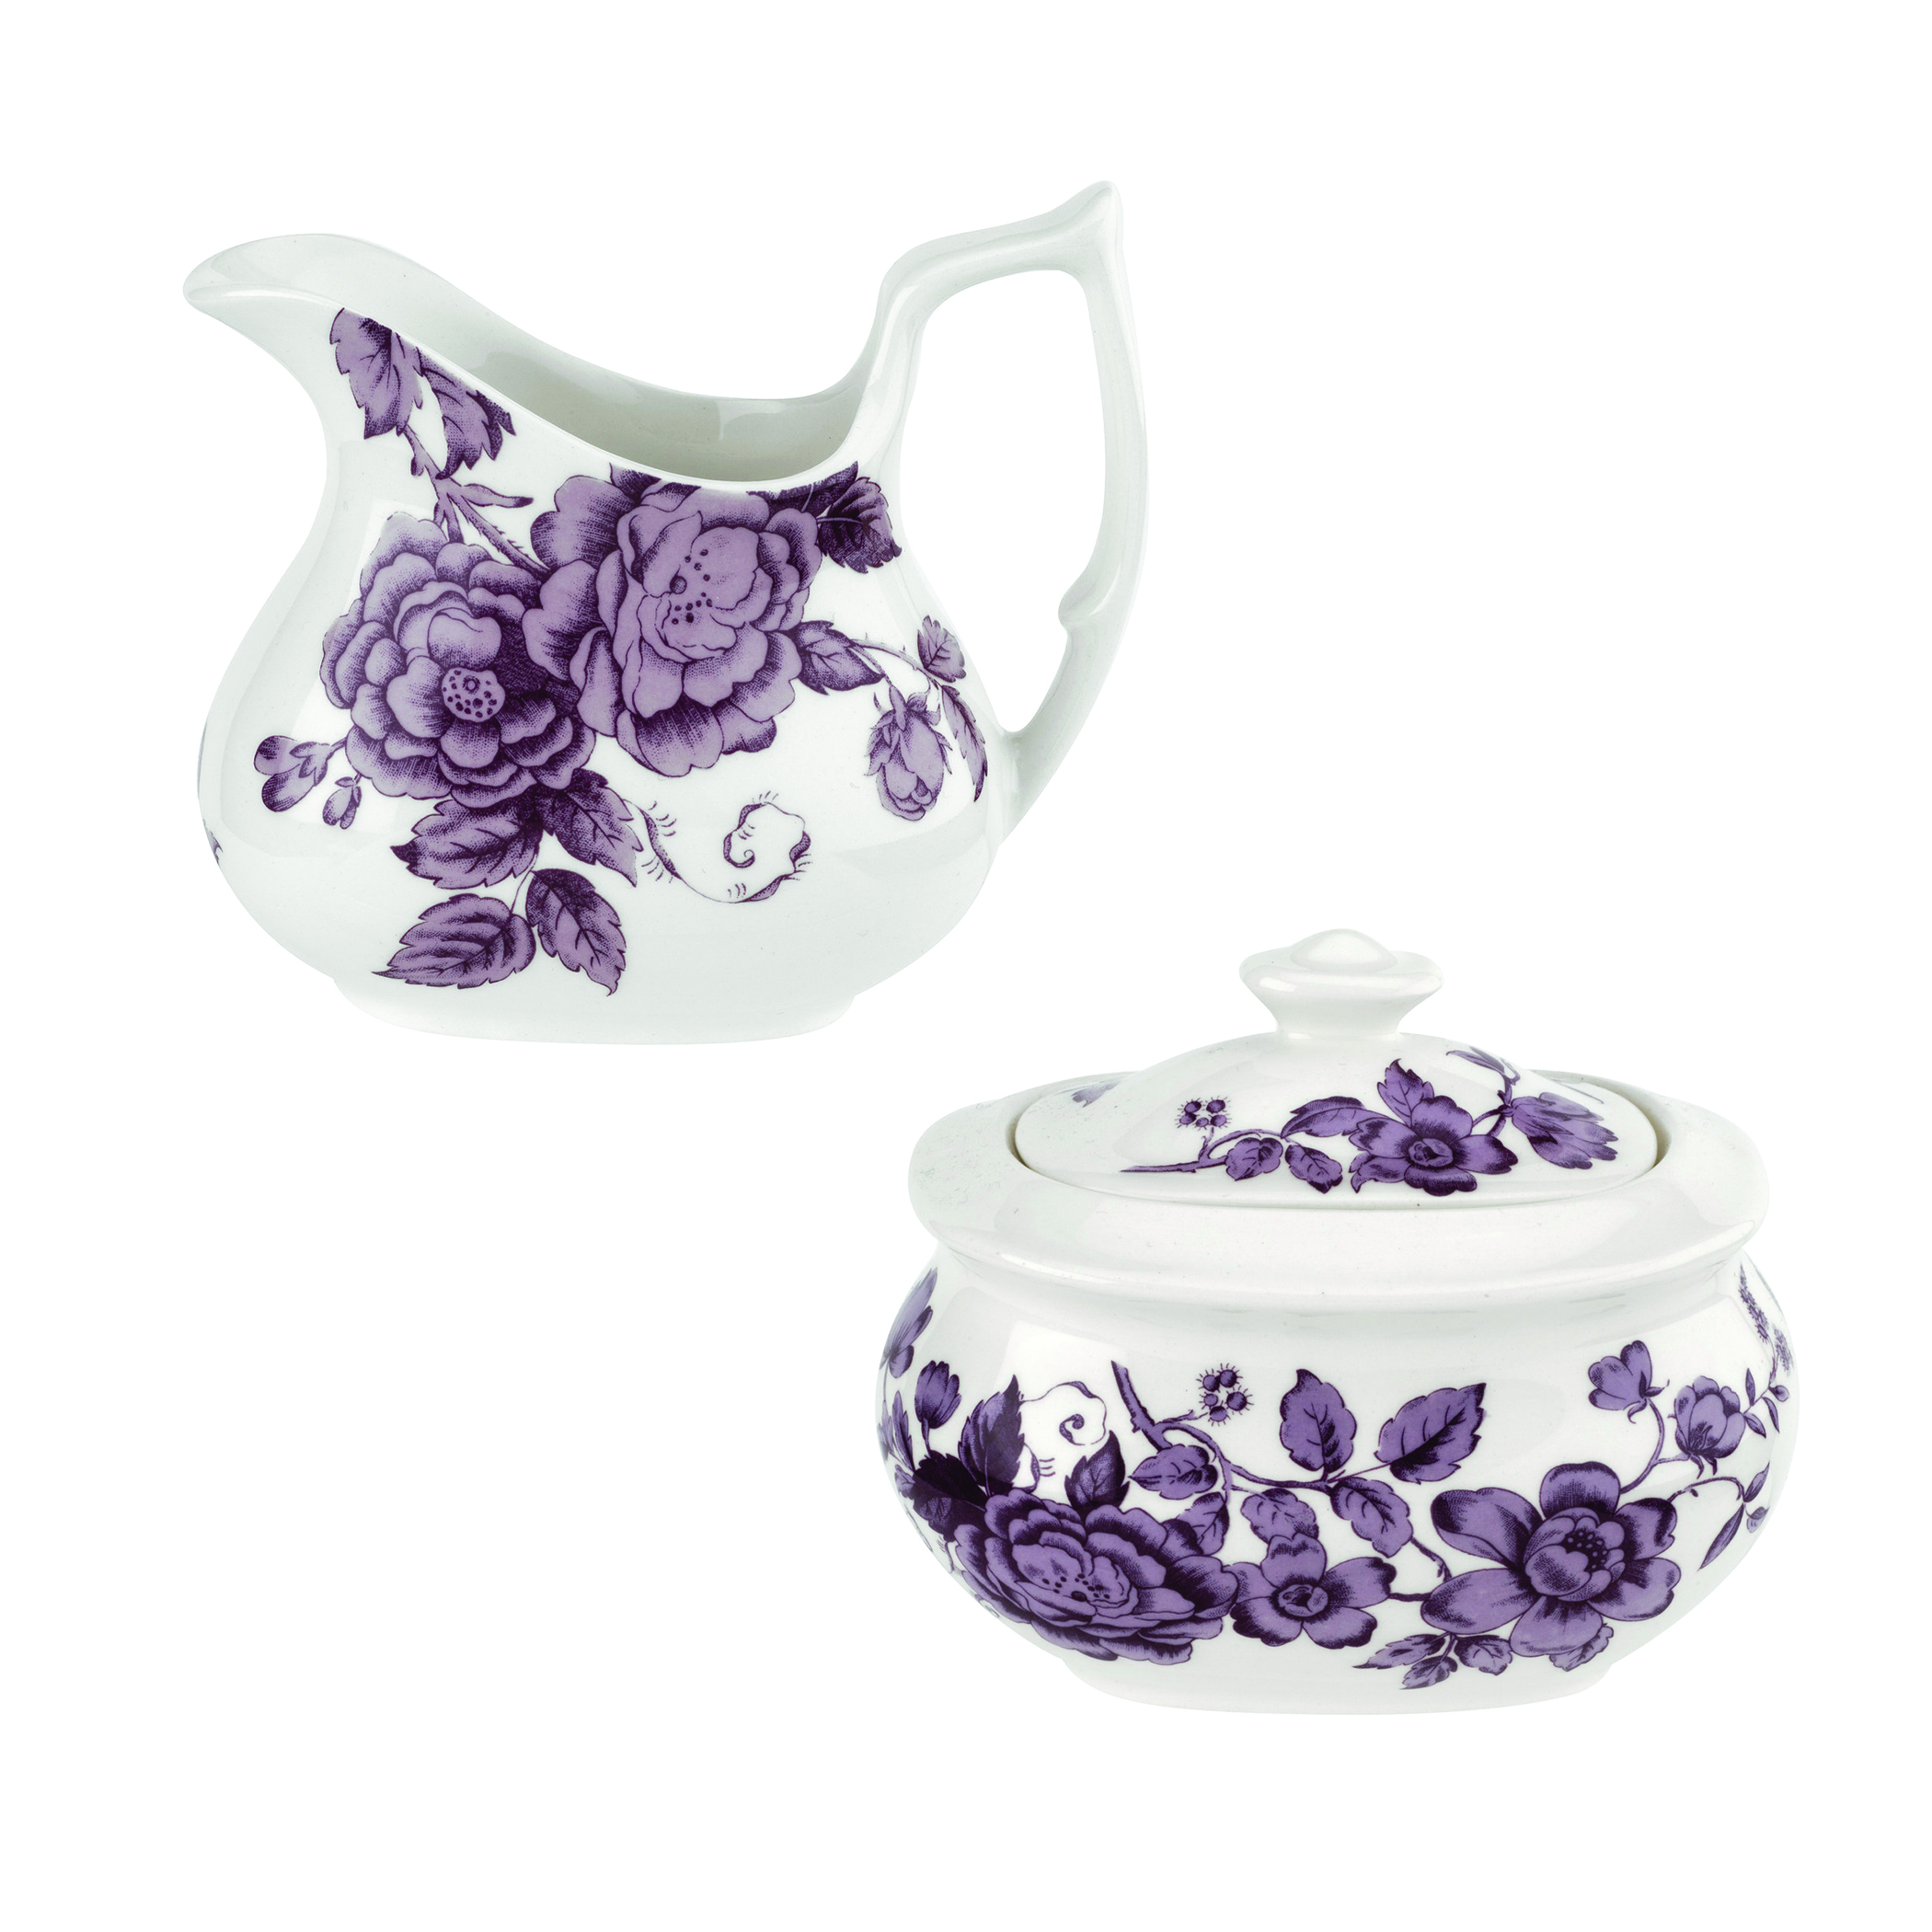 Spode Kingsley Sugar and Creamer Set image number 0